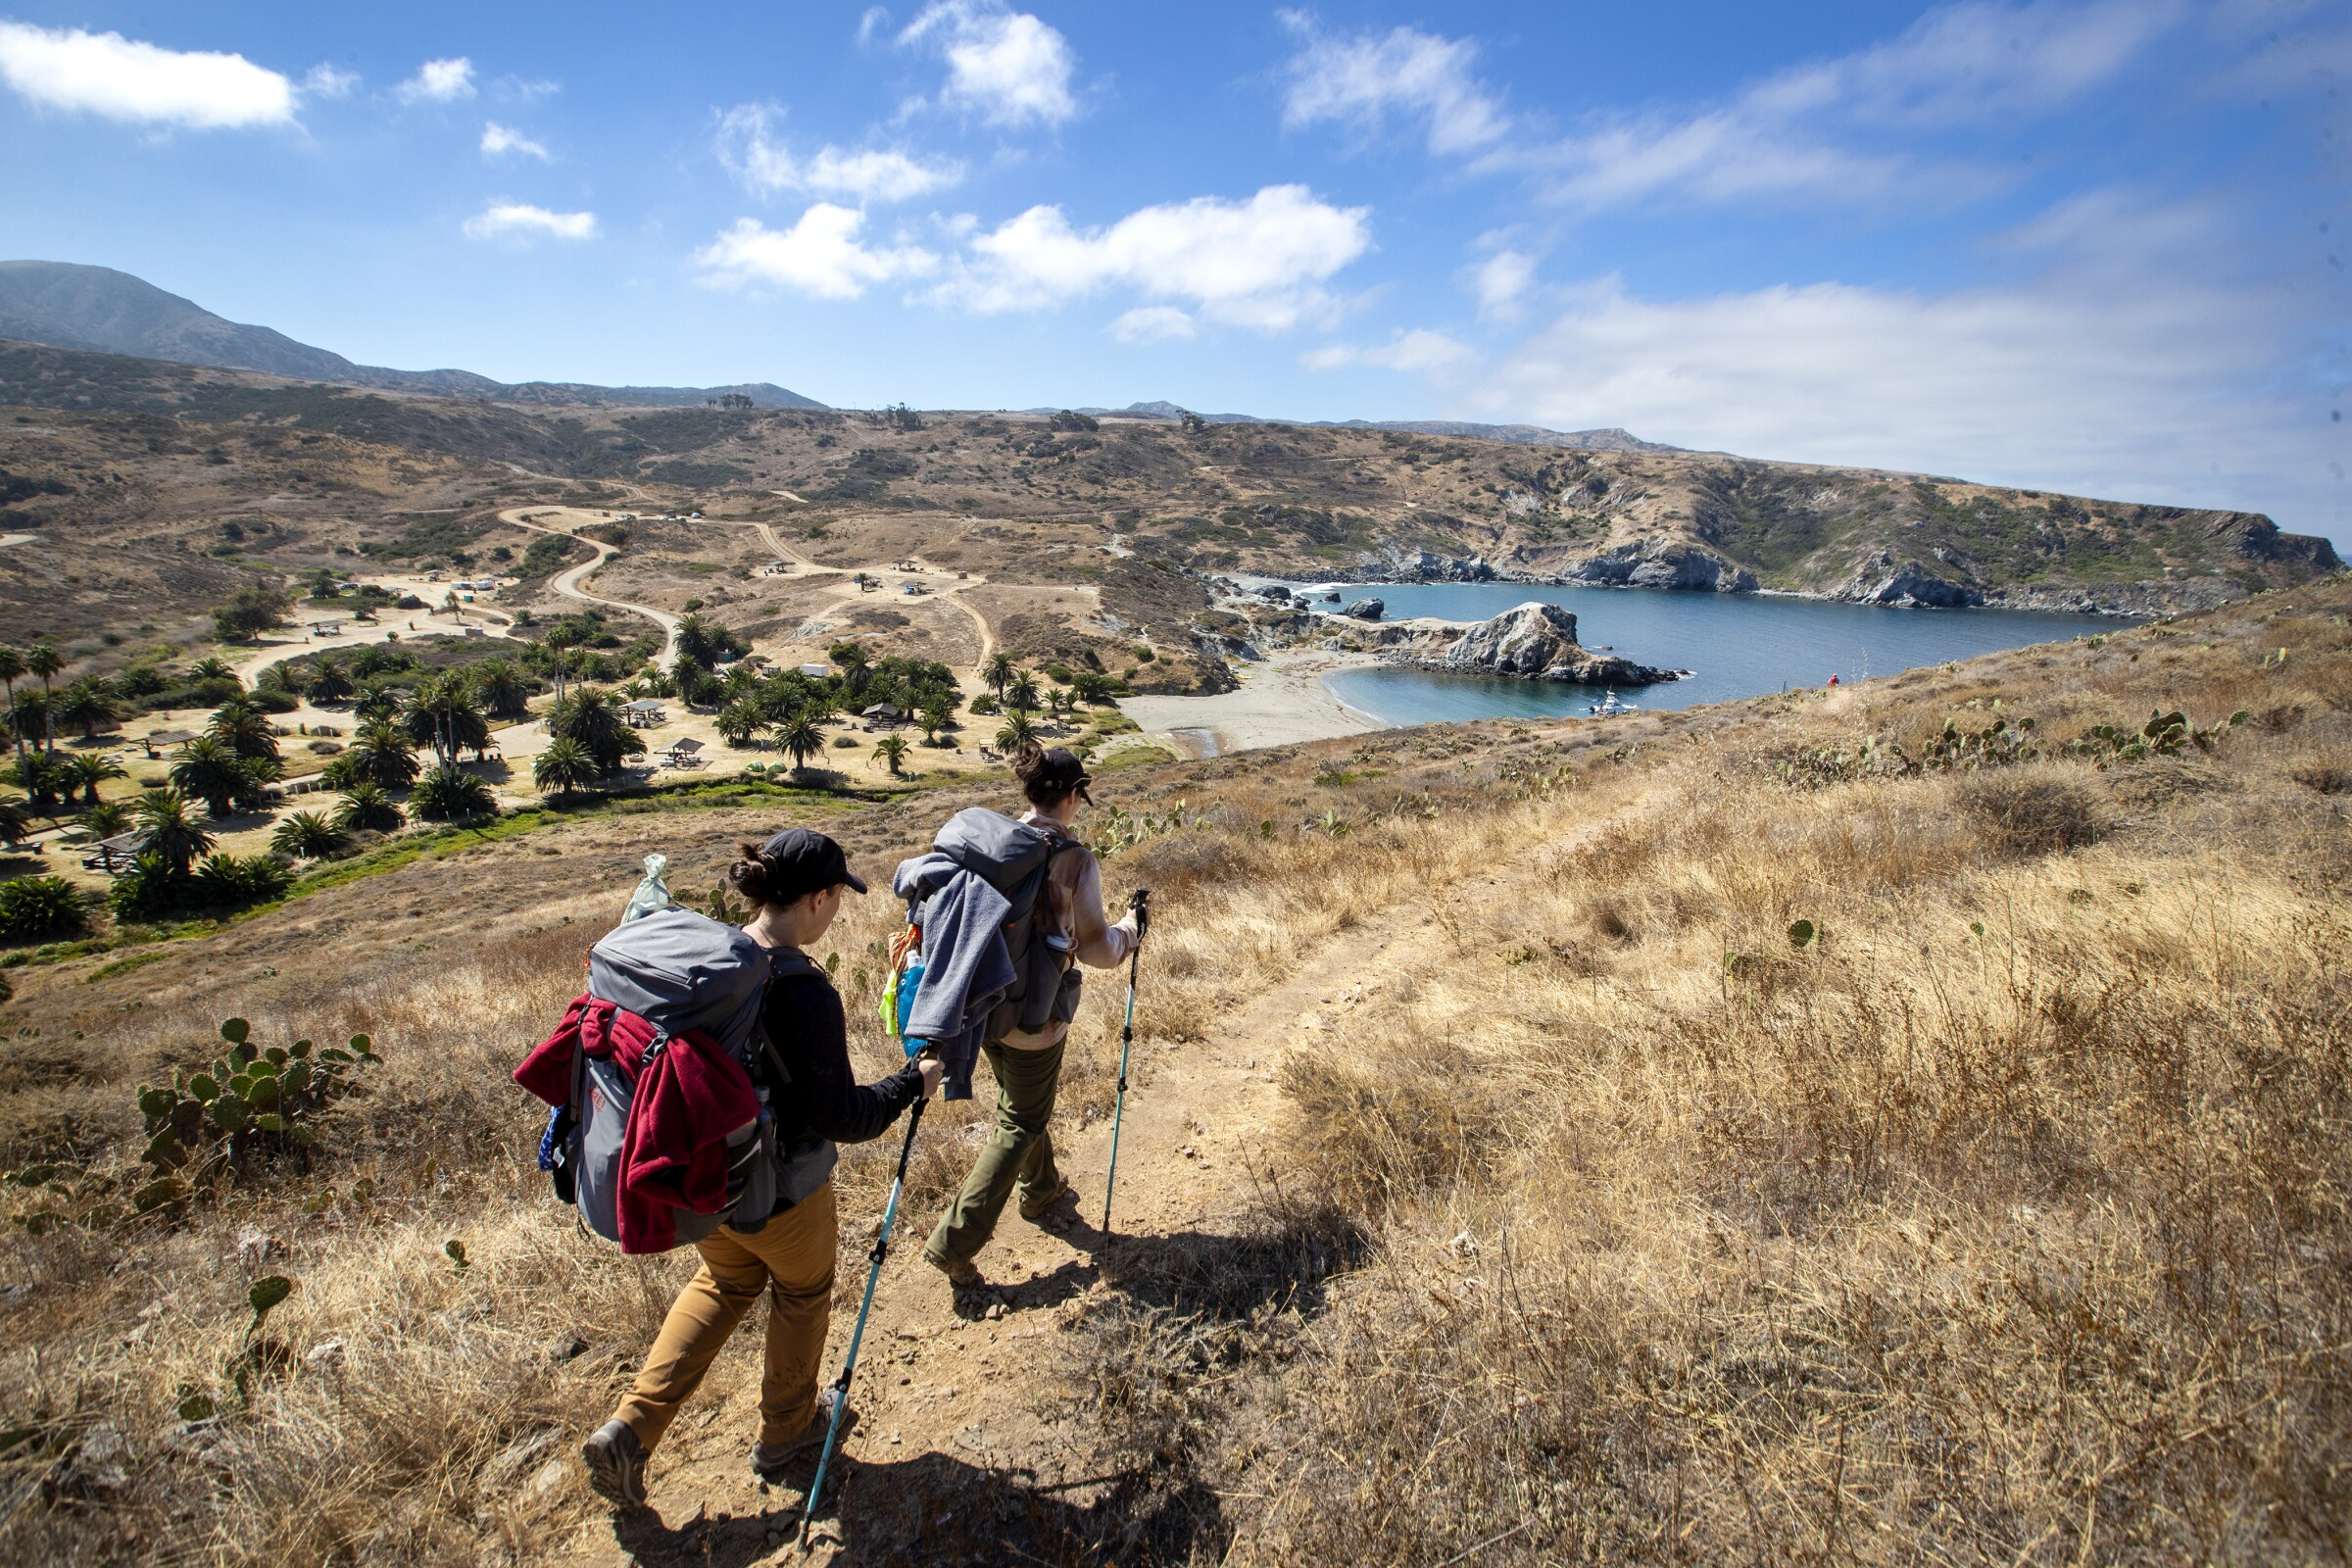 Two hikers, wearing backpacks, arrive at Little Harbor campground.